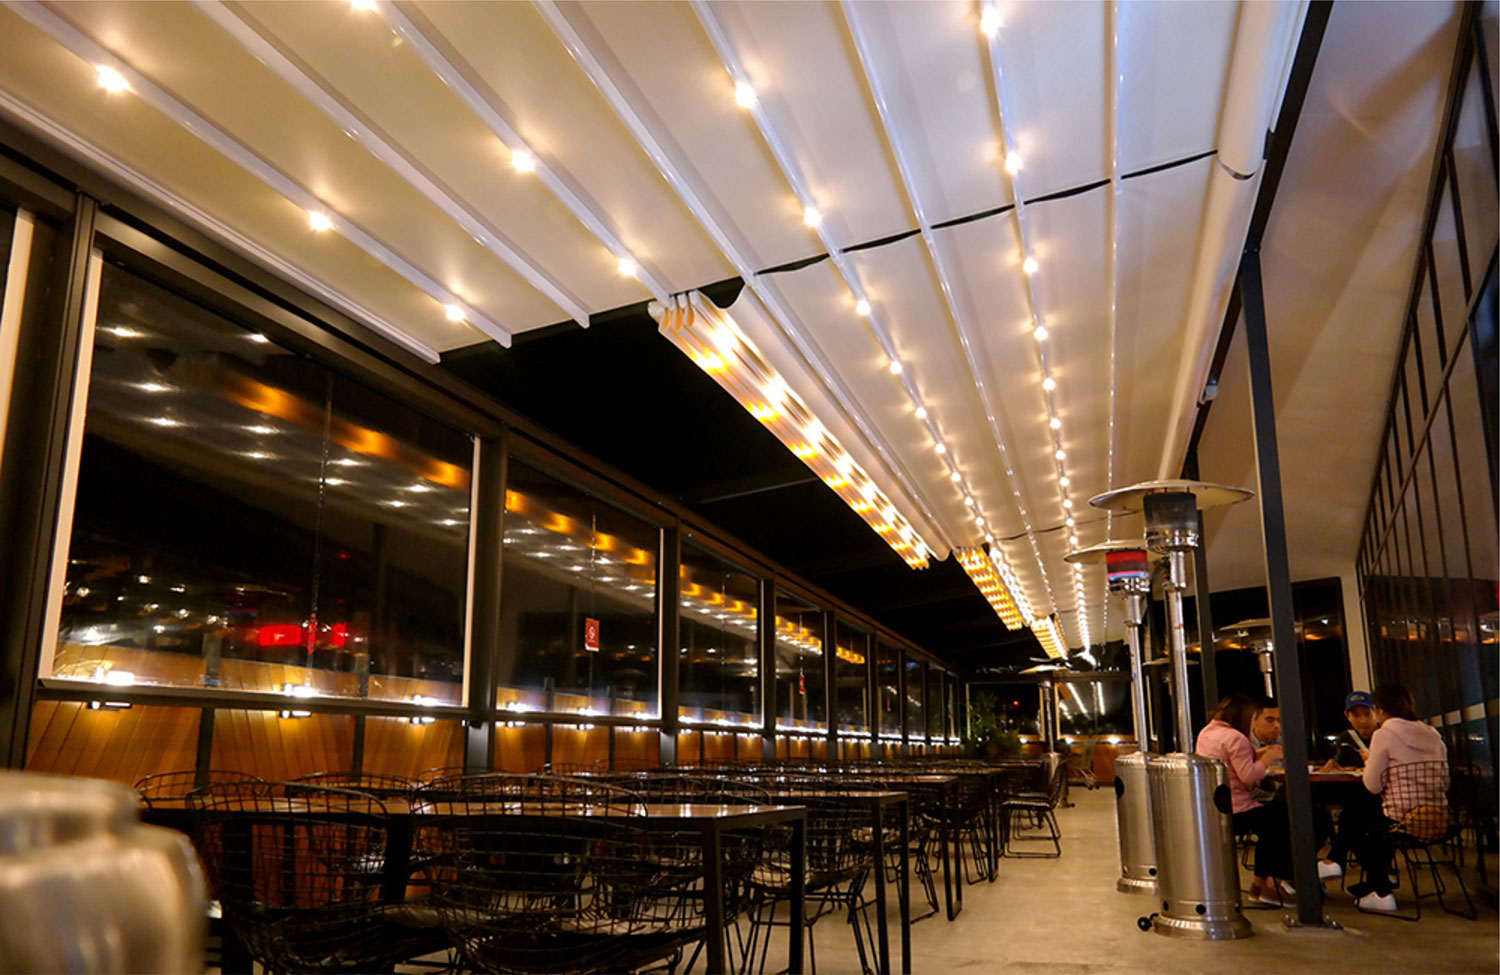 Awning Warehouse Retractable Awnings Ideal For Restaurant